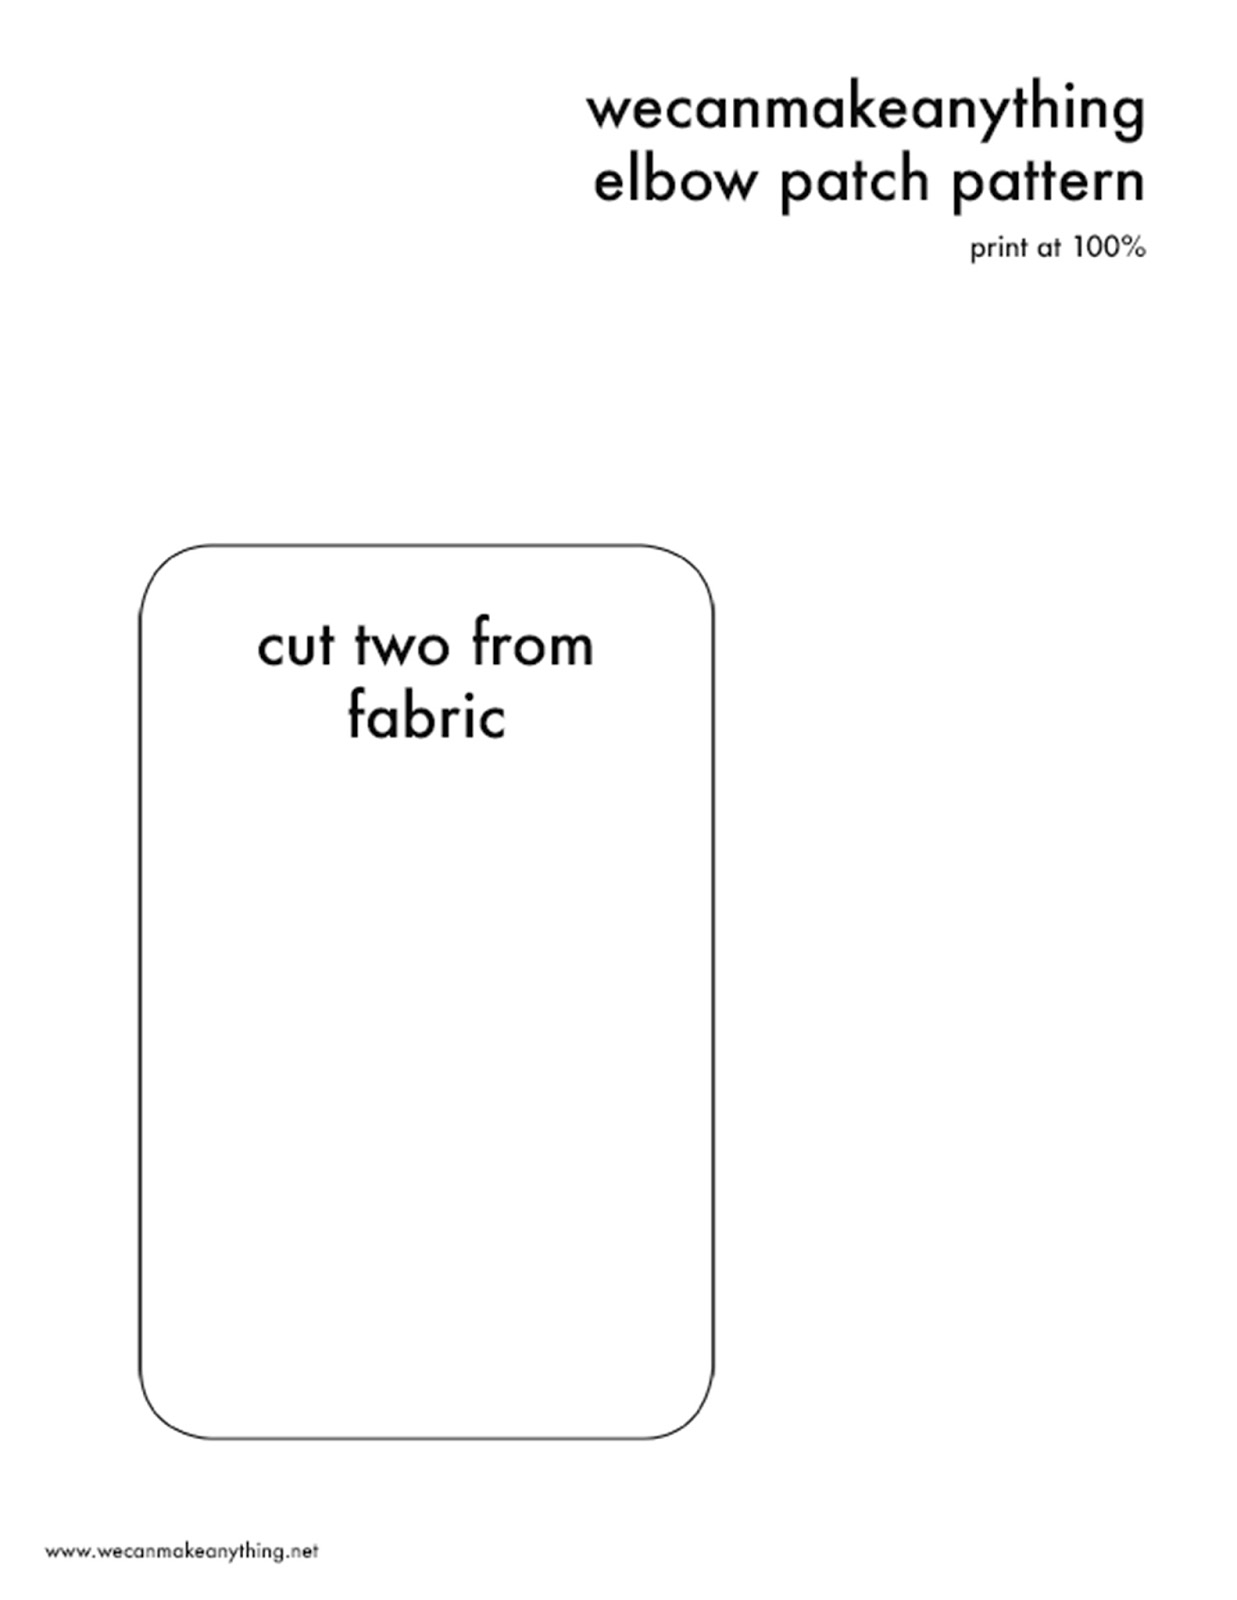 elbow patch template - we can make anything how to make elbow patches